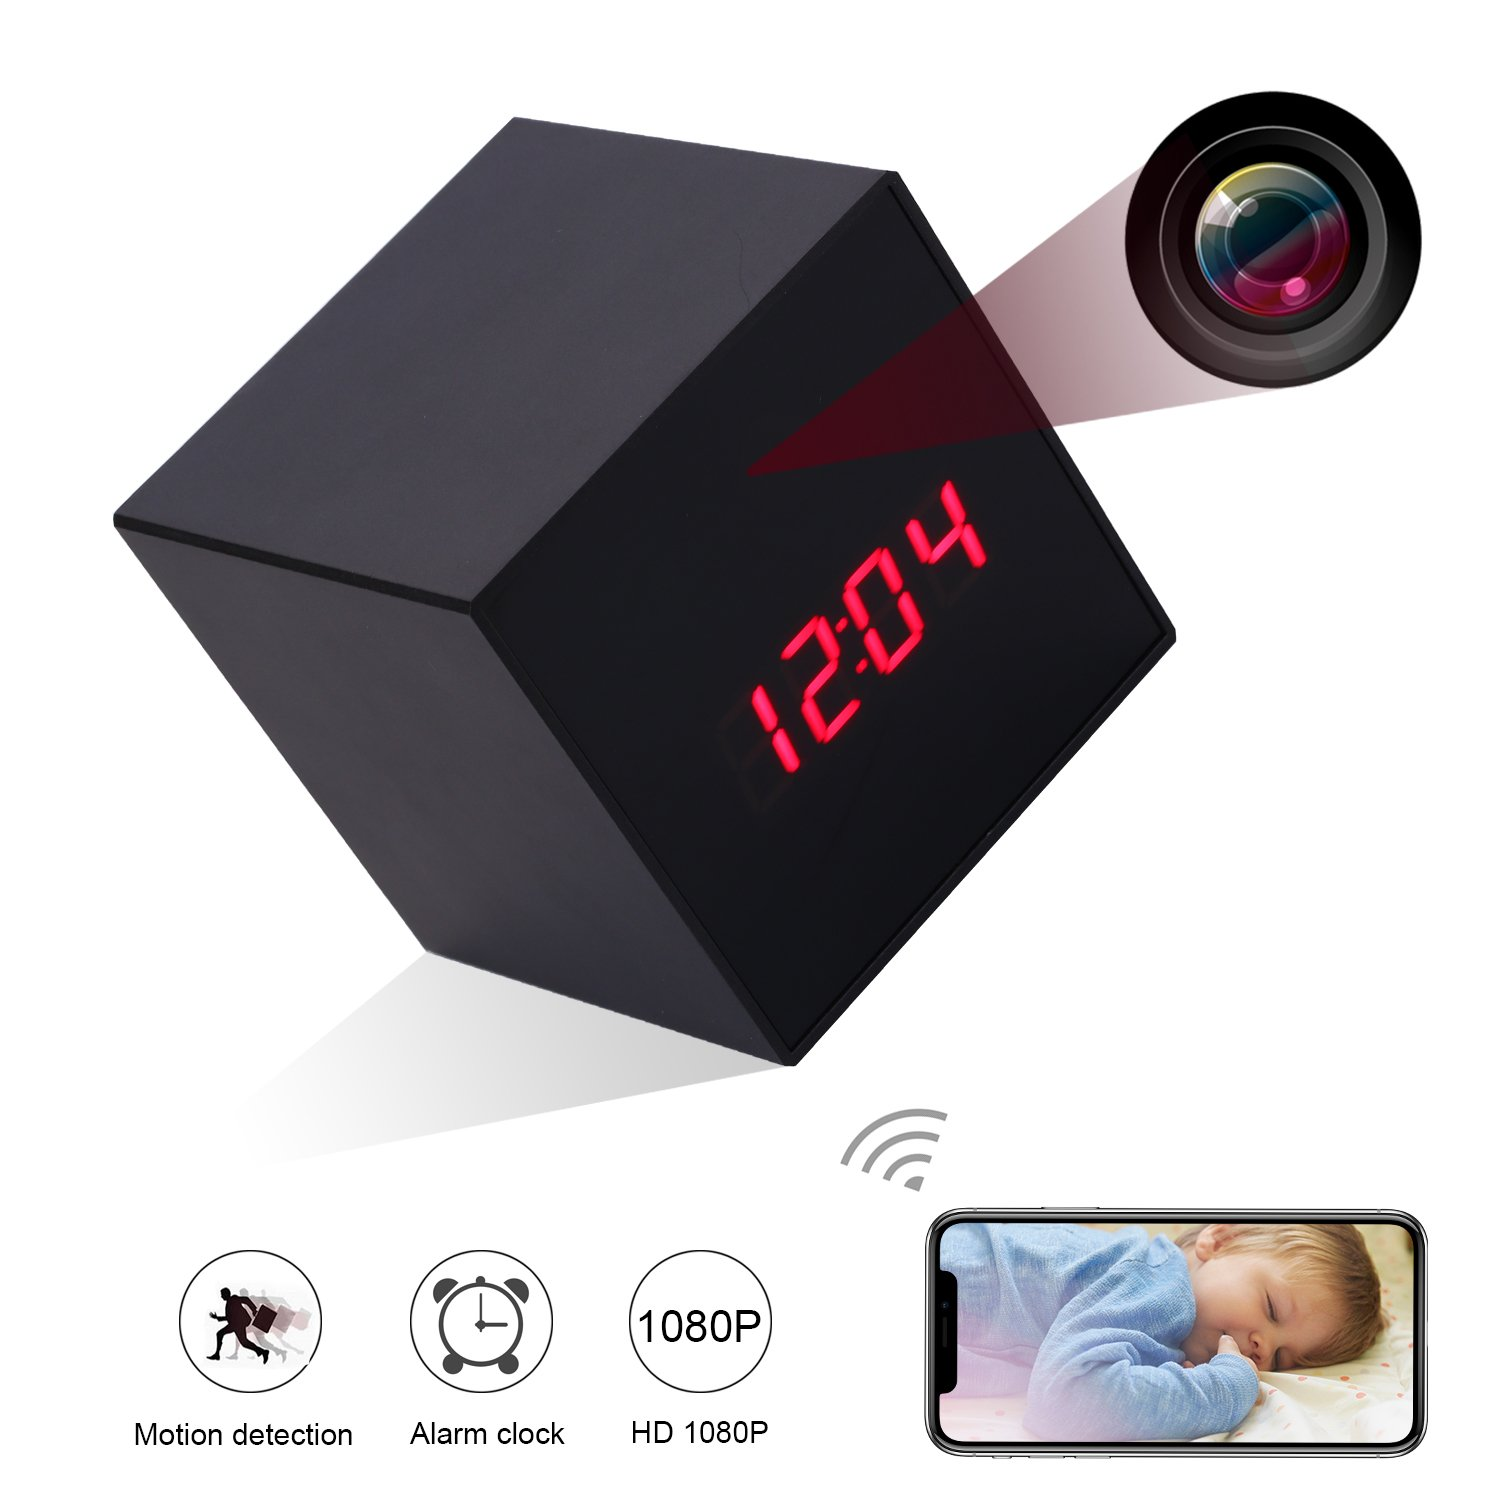 WiFi Hidden Spy Camera Alarm Clock 12/24 Hour System,HD 1080P Wireless Security Clock Camera with Motion Detection for Home Office Travel-Back